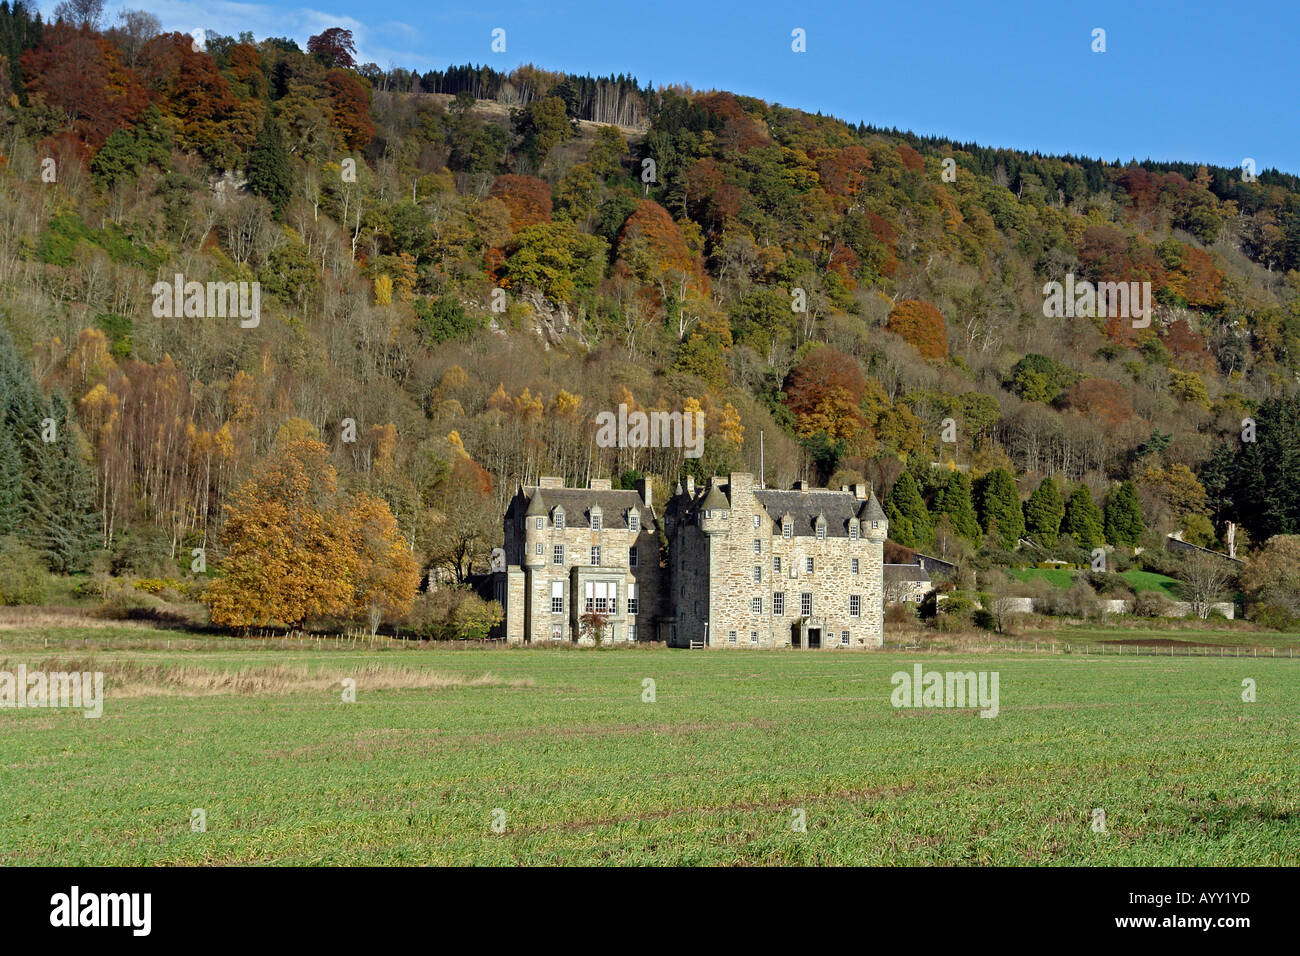 Castle Menzies home of the Clan Menzies outside Aberfeldy in Perthshire - Stock Image